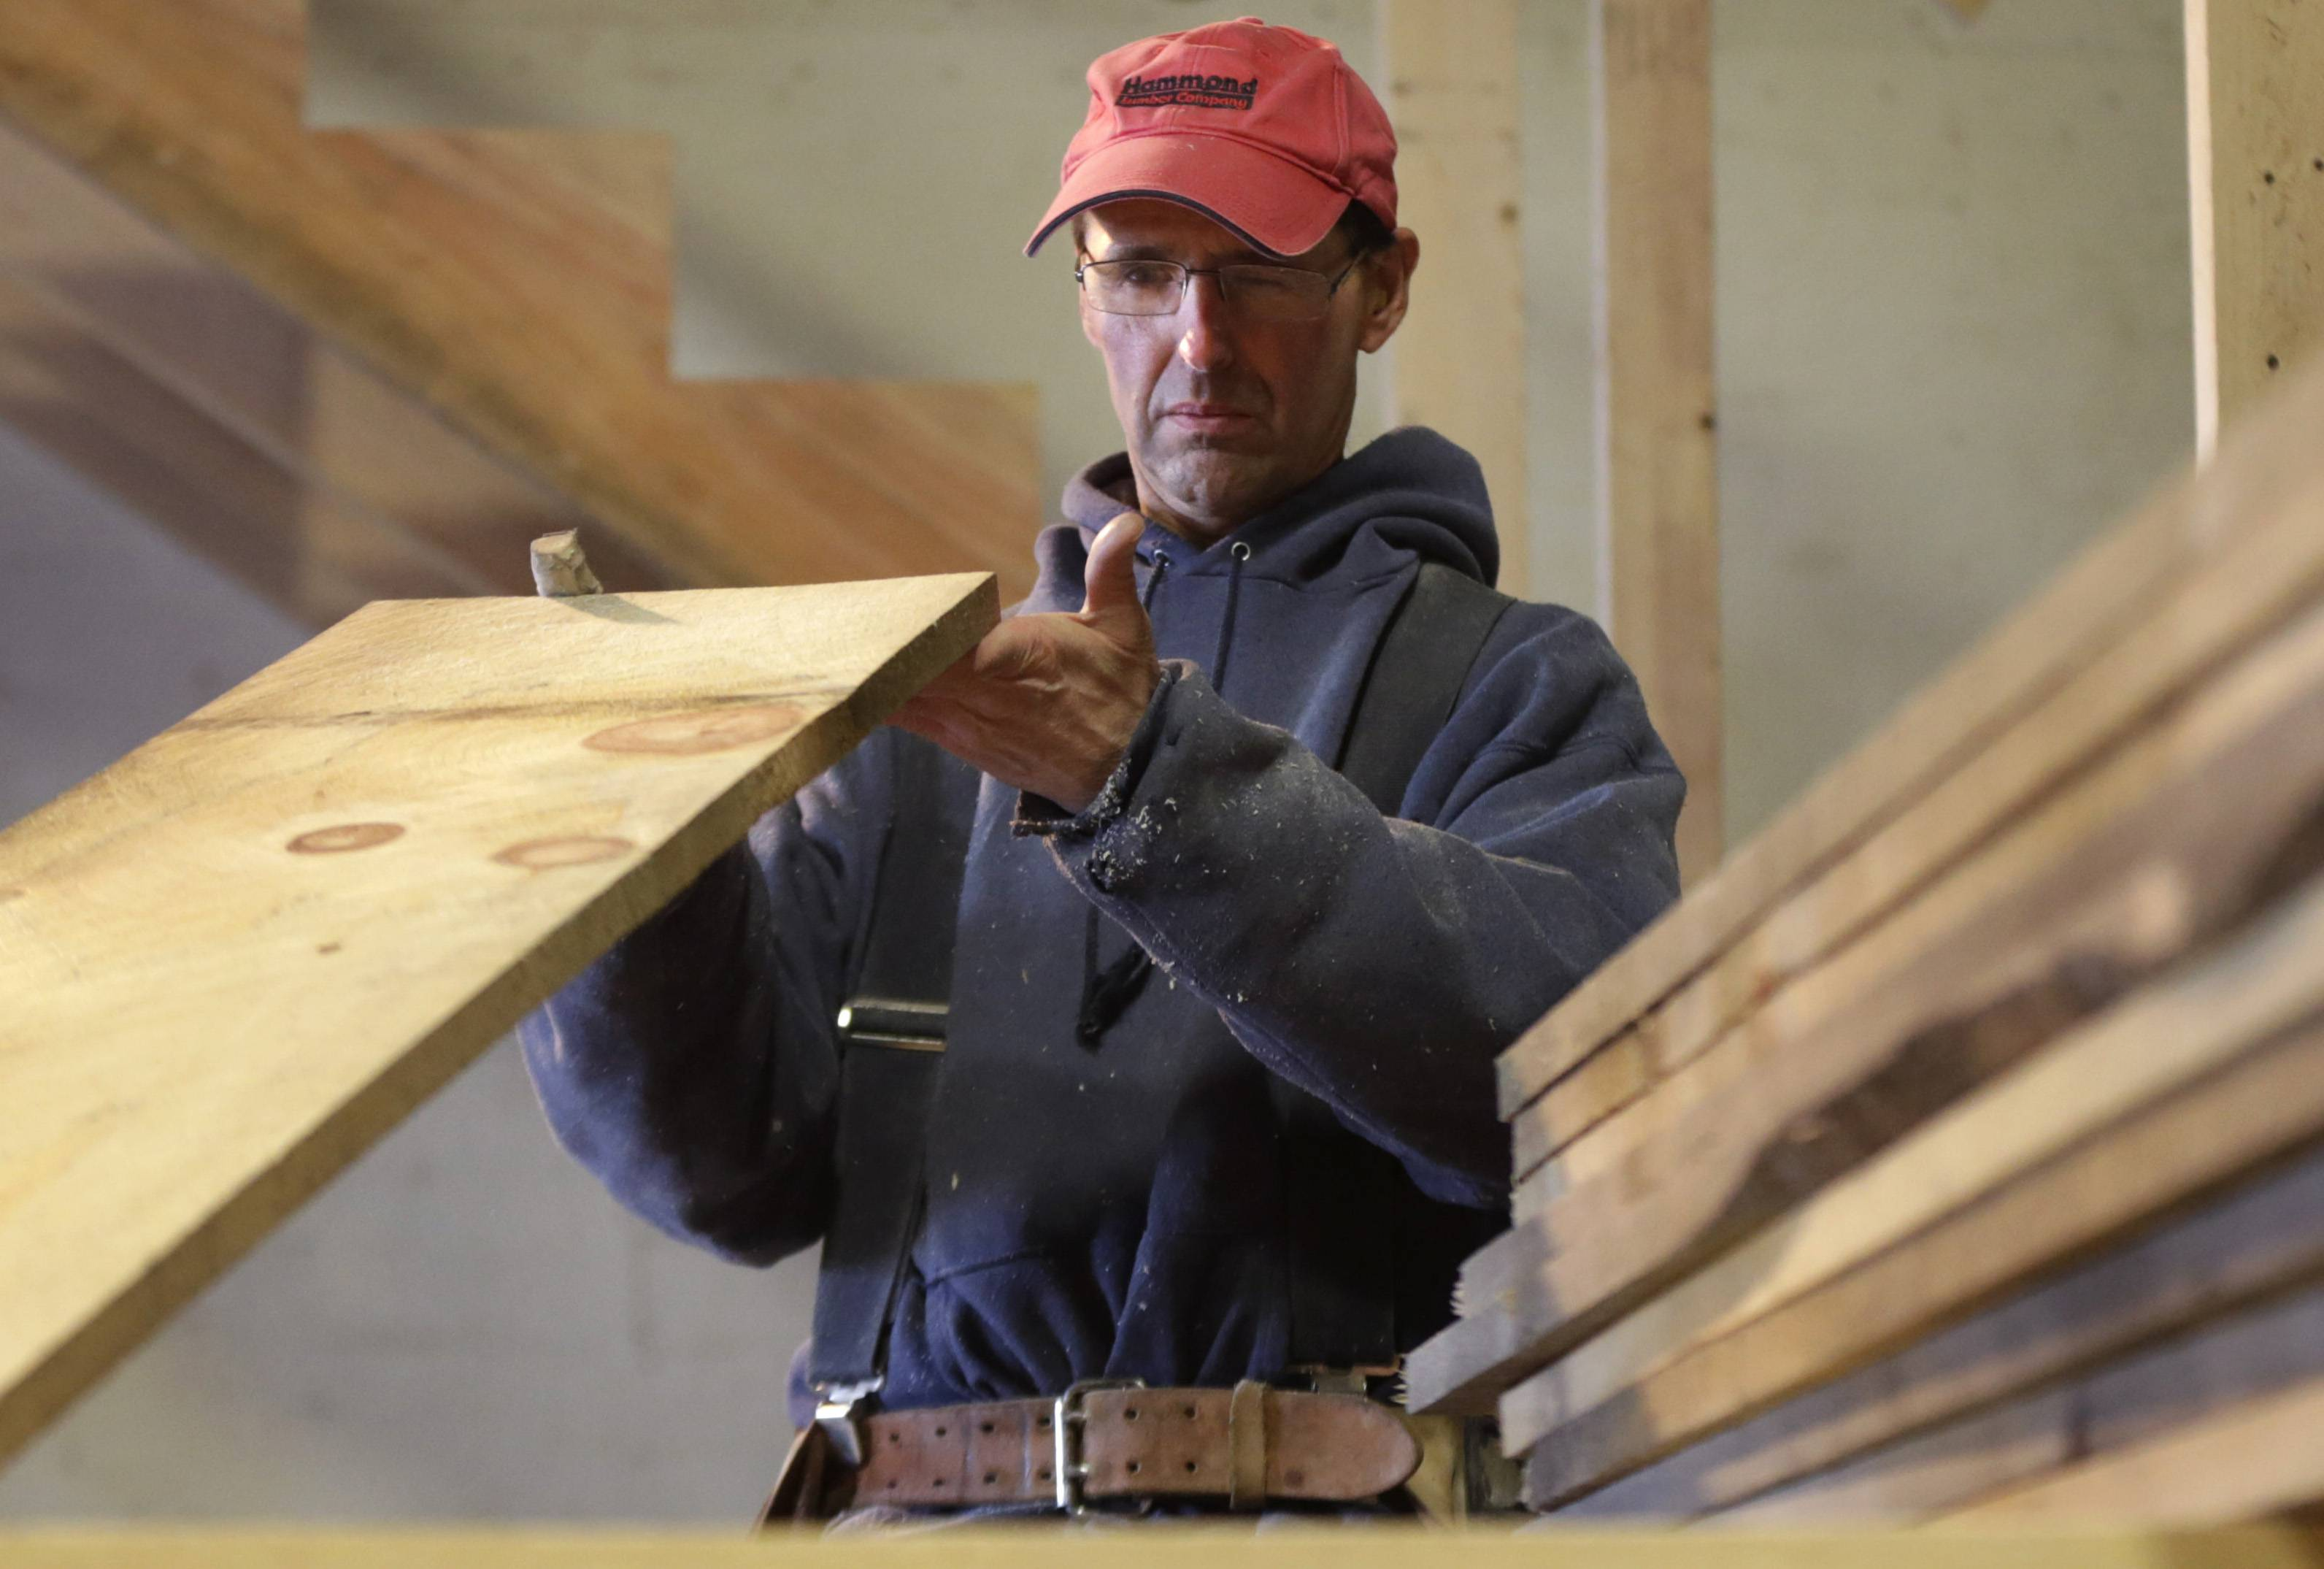 Ken Voorhees examines a board for defects while building a stairway for a customer in Lisbon, Maine. Voorhees, who is self-employed, signed up for health insurance with Maine Health Community Options. The nonprofit cooperative is capturing about 80 percent of the customers in the state seeking coverage under the health care law.